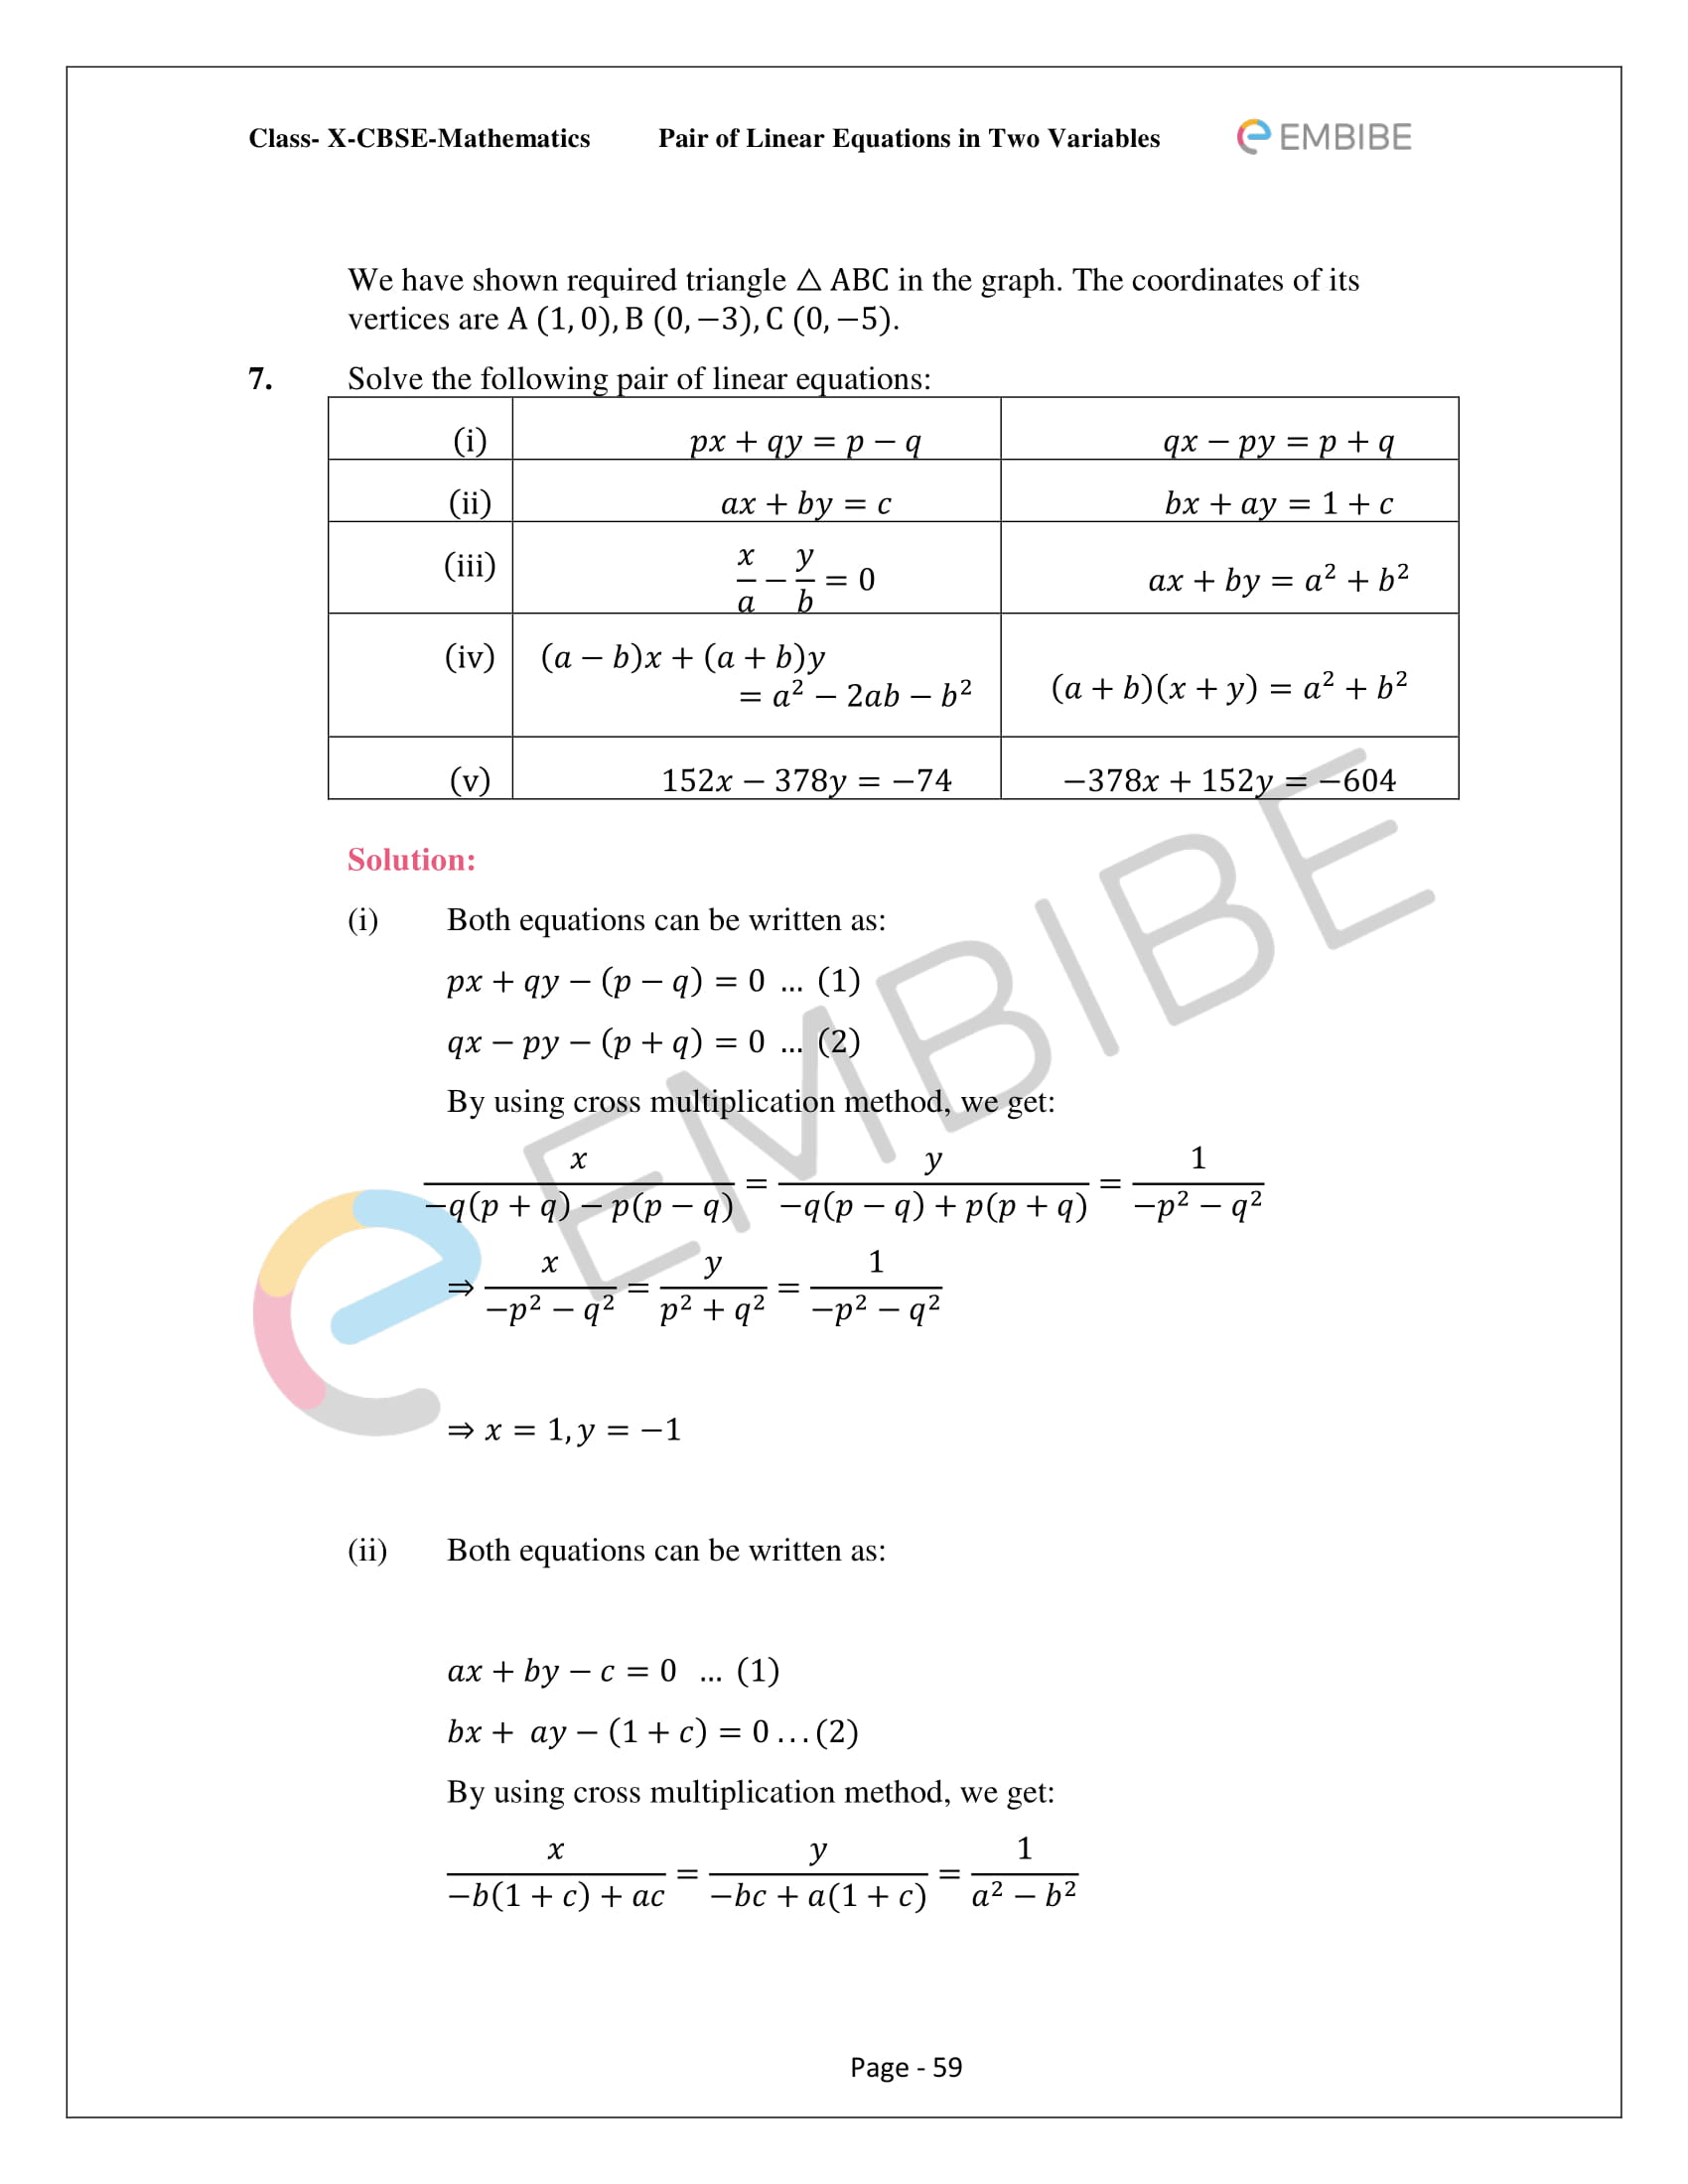 CBSE NCERT Solutions For Class 10 Maths Chapter 3 - Pair of Linear Equations In Two Variables - 59